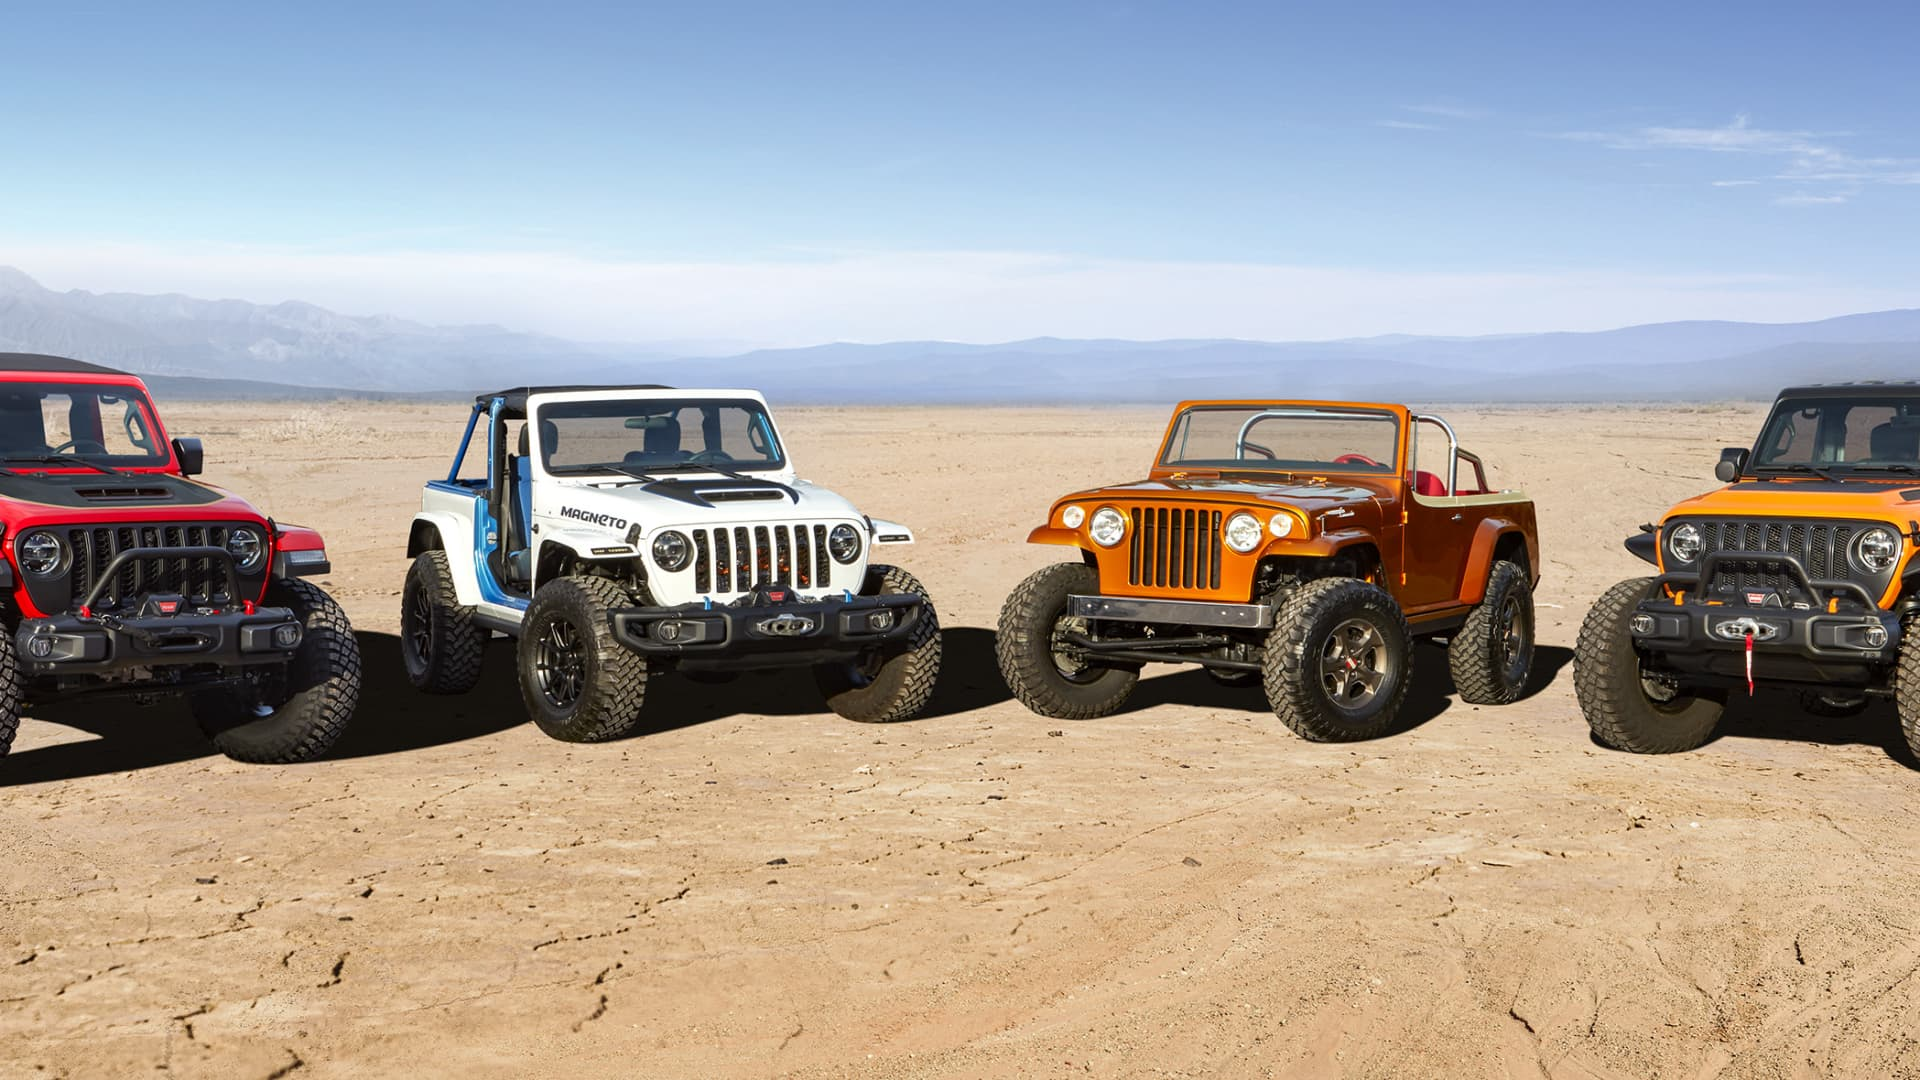 Concept vehicles for this year's Jeep Easter Safari include (left to right) Jeep Red Bare, Jeep Magneto, Jeepster Beach and Jeep Orange Peelz.